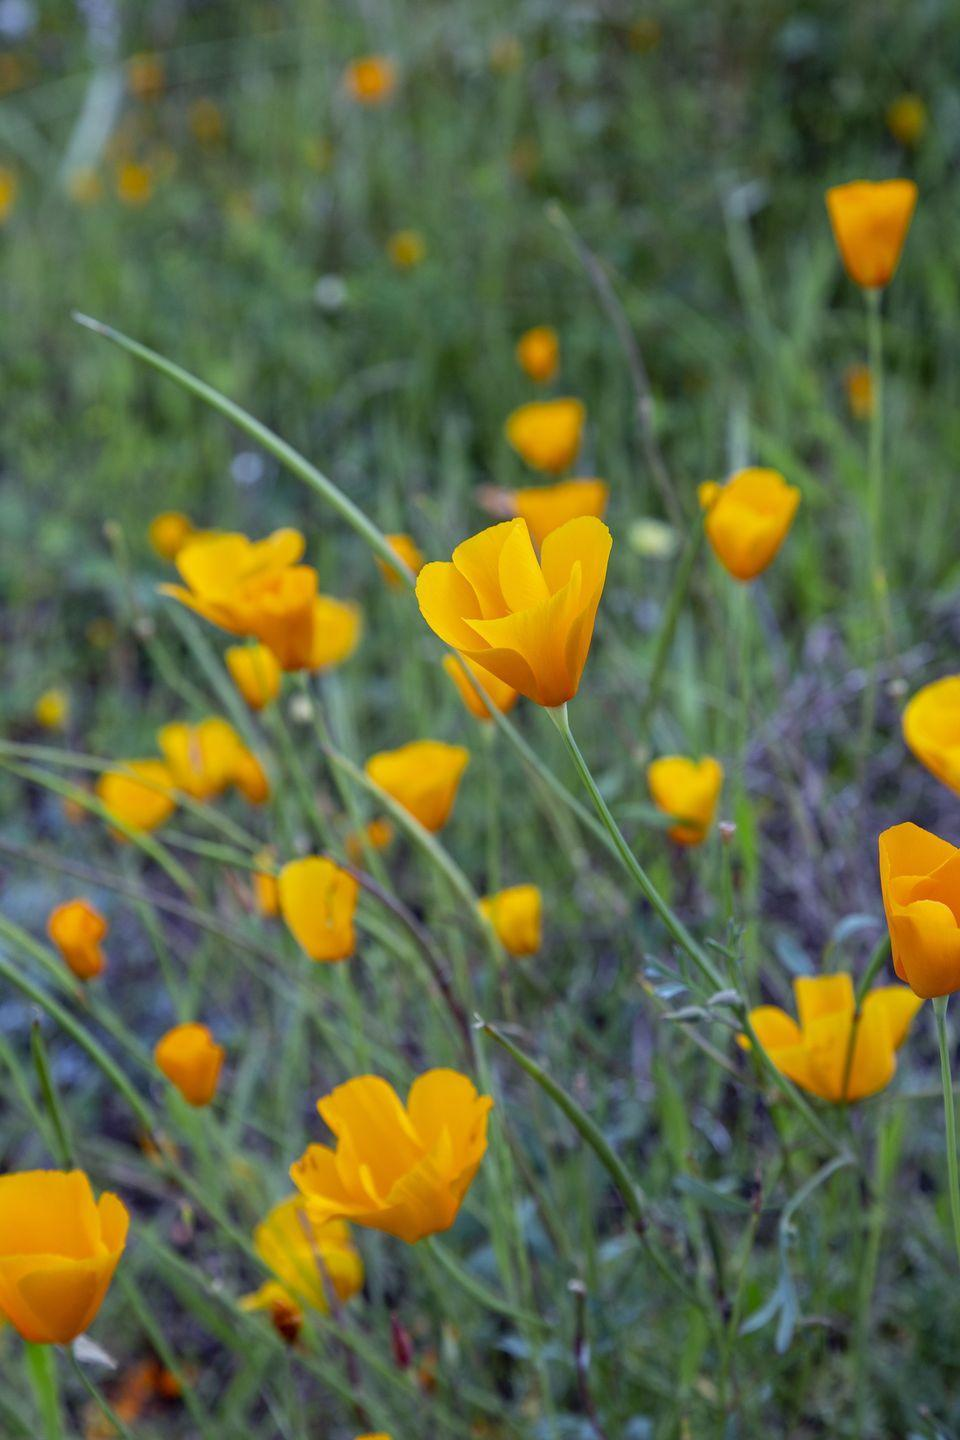 """<p>Bees love the cup-shaped flowers of this native wildflower. Look for their orange, yellow, pink, or white blooms in the spring months.<br><br><a class=""""link rapid-noclick-resp"""" href=""""https://www.amazon.com/Outsidepride-California-Poppy-Wildflower-Seed/dp/B004J0XZBS/ref=sxin_2_ac_d_rm?tag=syn-yahoo-20&ascsubtag=%5Bartid%7C10050.g.32157369%5Bsrc%7Cyahoo-us"""" rel=""""nofollow noopener"""" target=""""_blank"""" data-ylk=""""slk:SHOP NOW"""">SHOP NOW</a> </p>"""